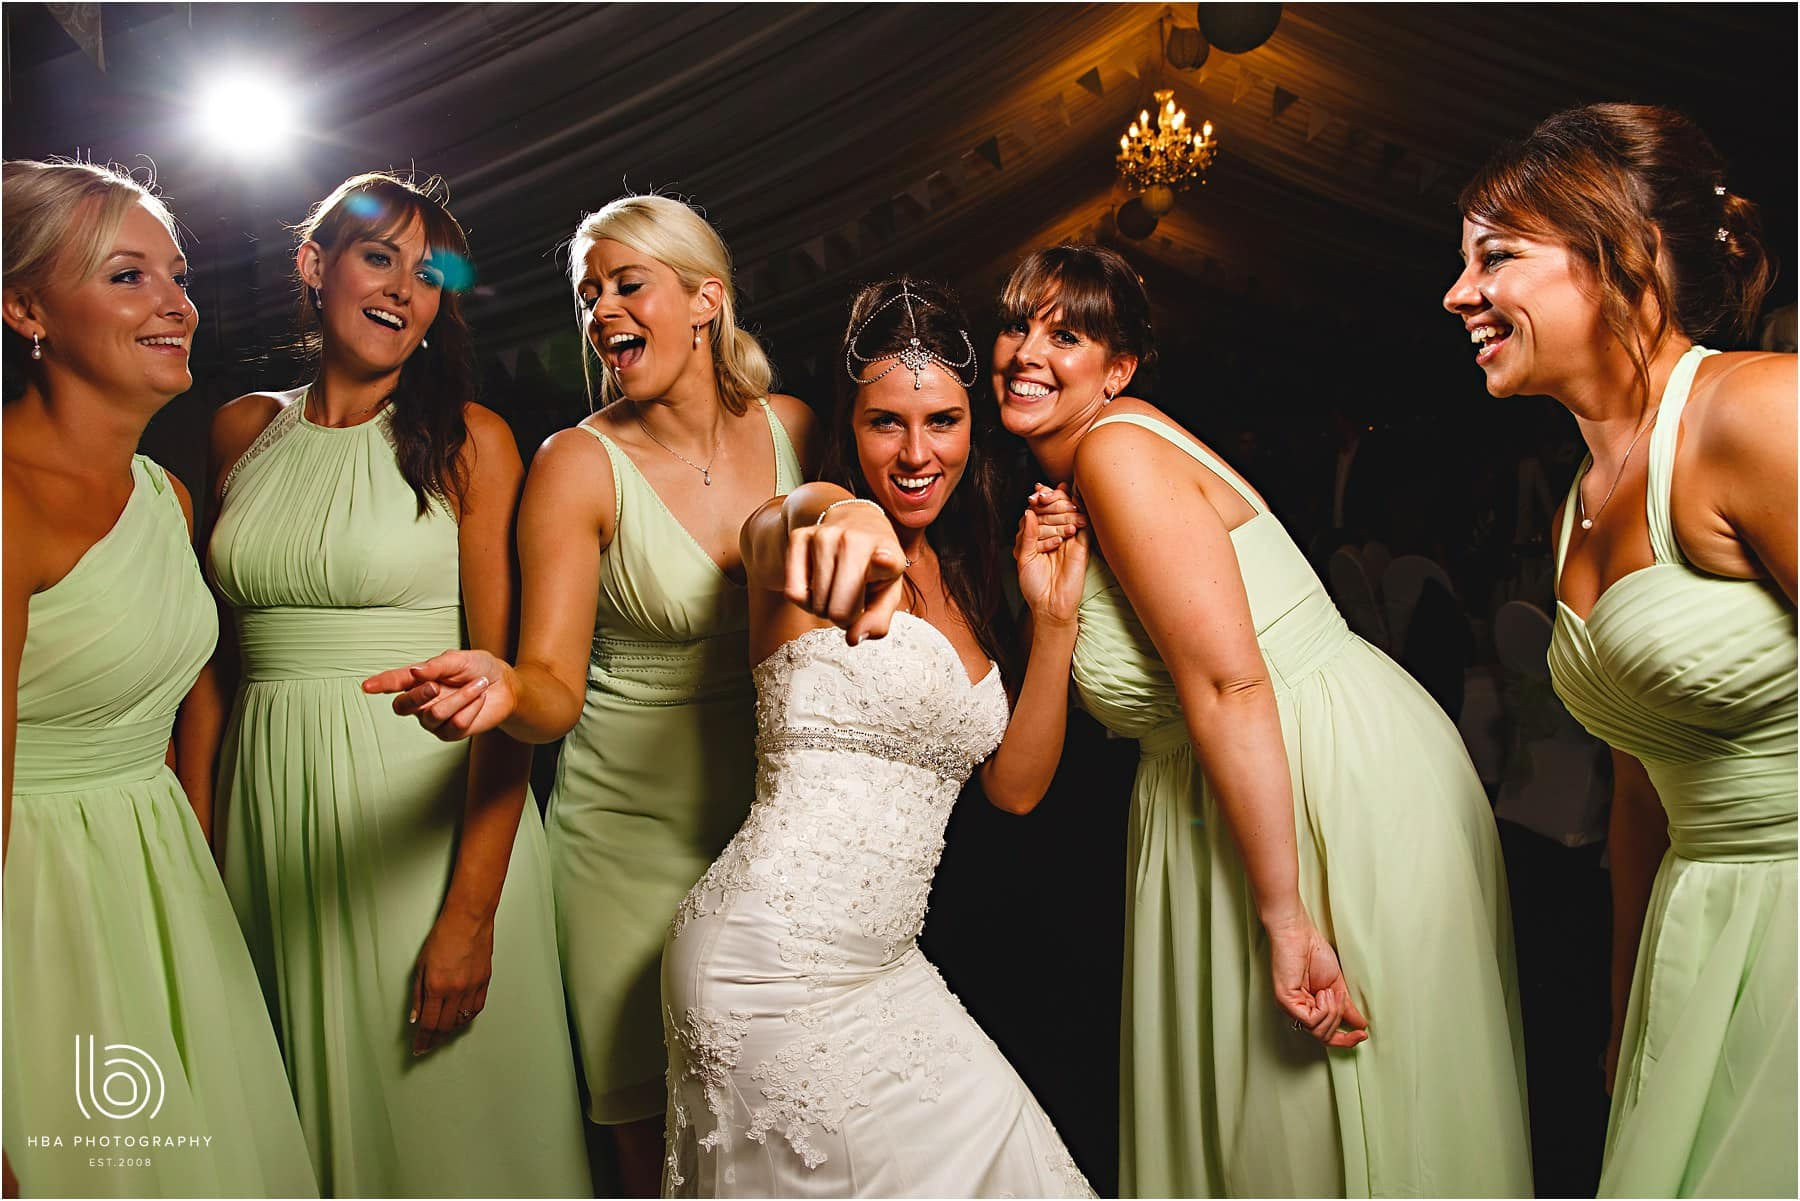 the bride and girls on the dancefloor